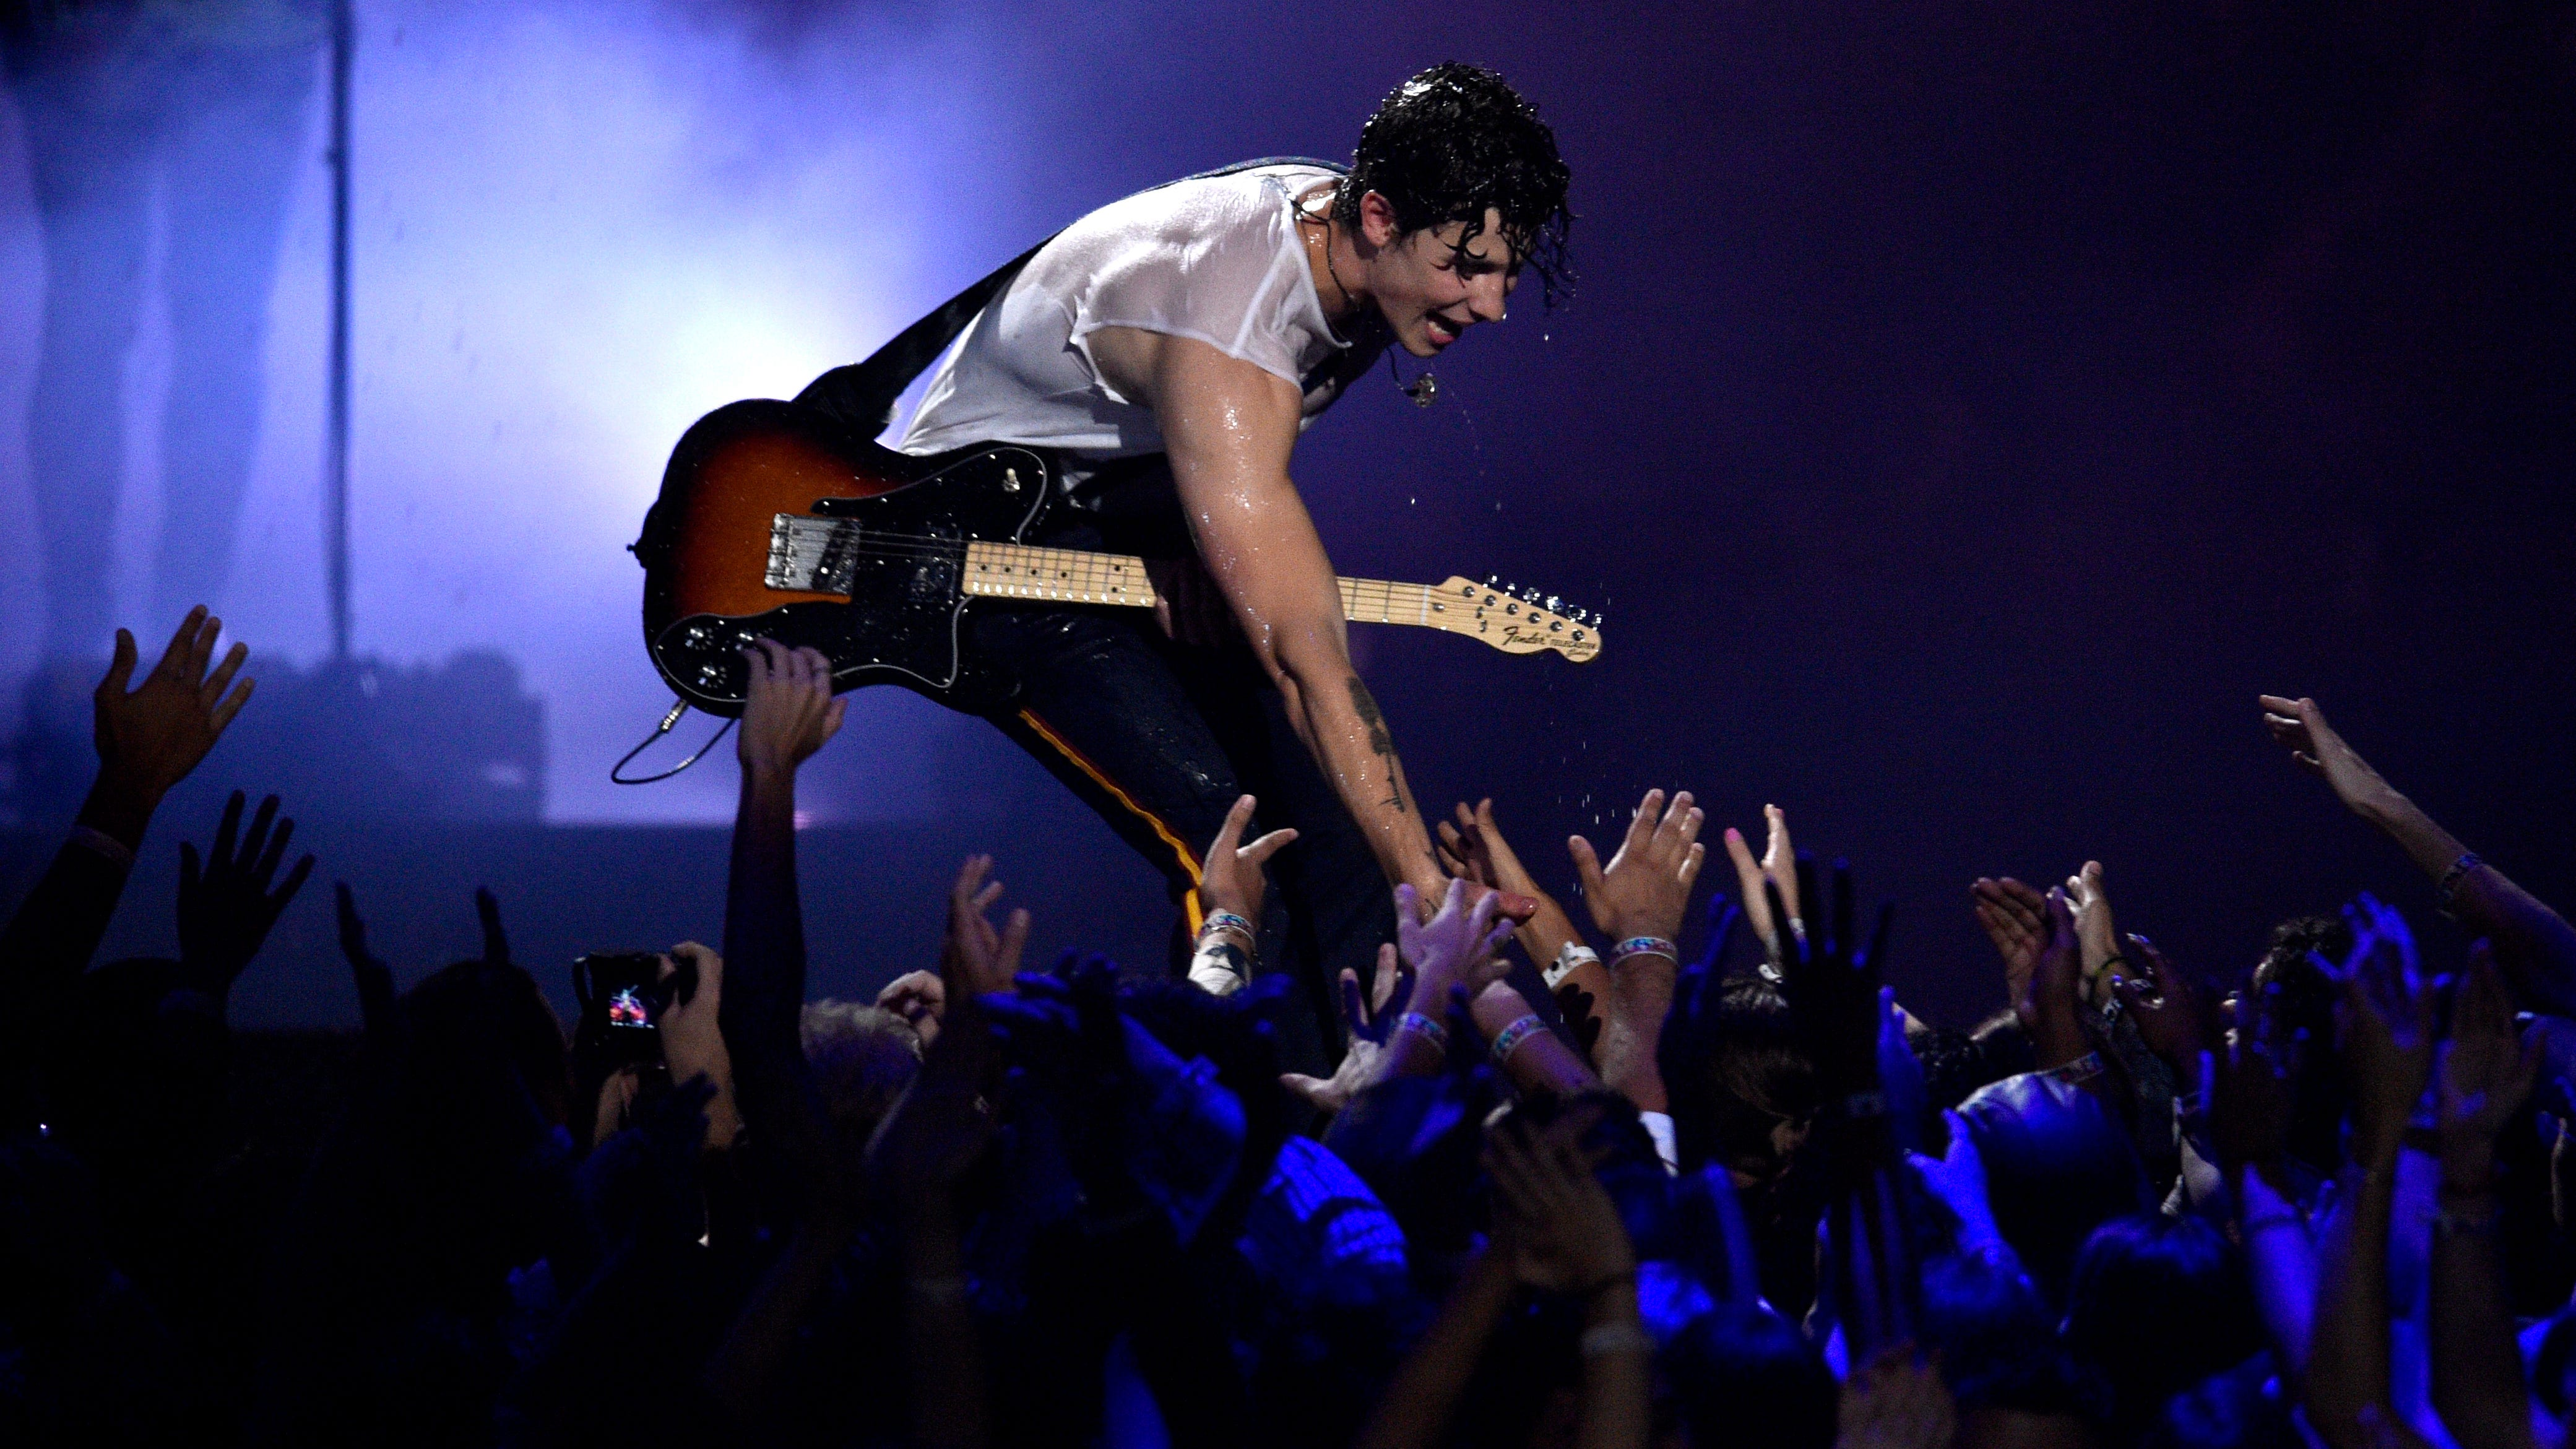 """Shawn Mendes performs """"In My Blood"""" onstage at the MTV Video Music Awards at Radio City Music Hall on Monday, Aug. 20, 2018, in New York. (Photo by Chris Pizzello/Invision/AP) ORG XMIT: CAPM224"""